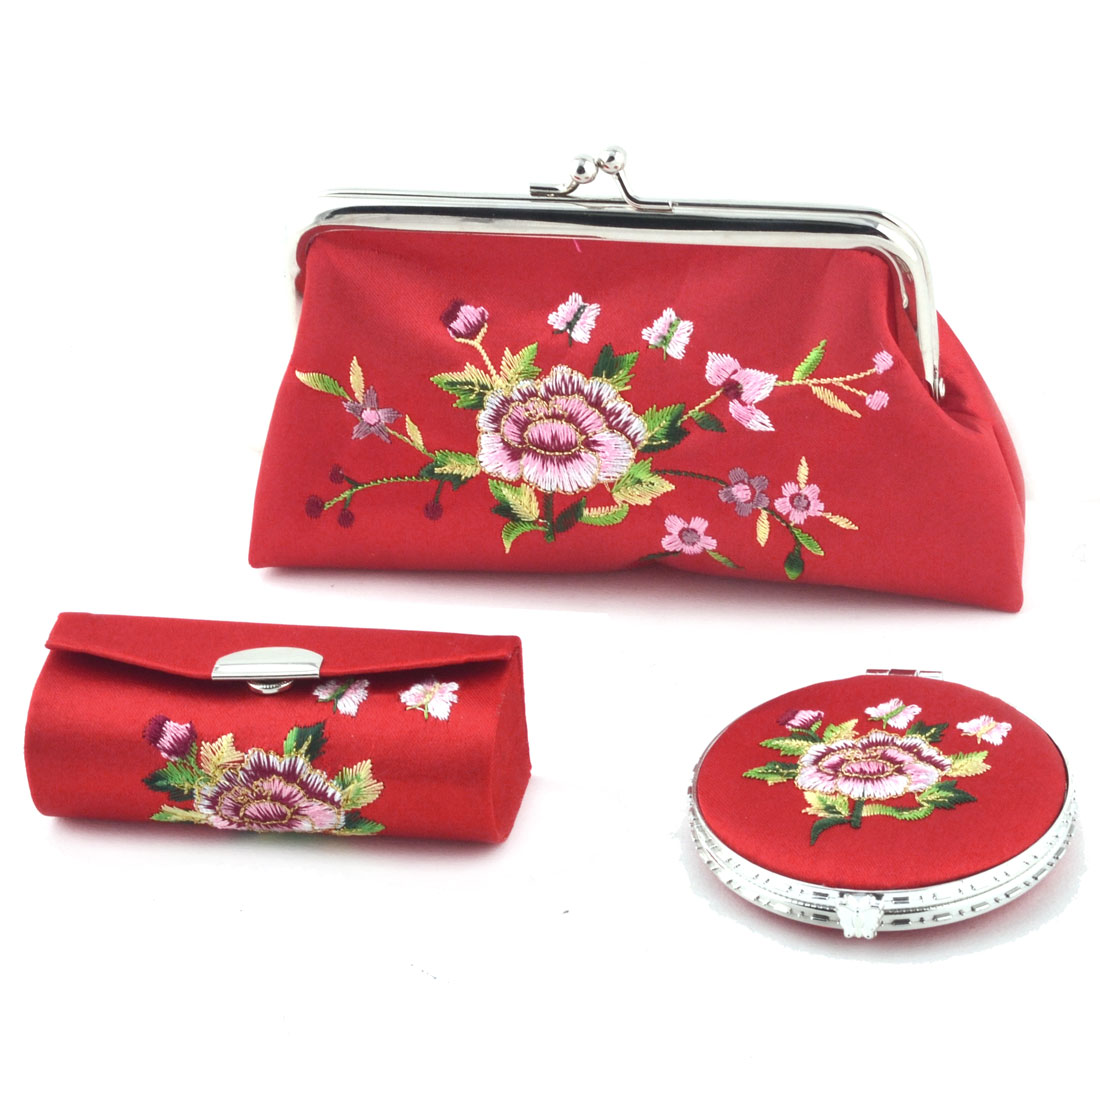 Lady Mercery Flower Print Classical Style Wallet Mirror Jewelry Make-up Box Set Red